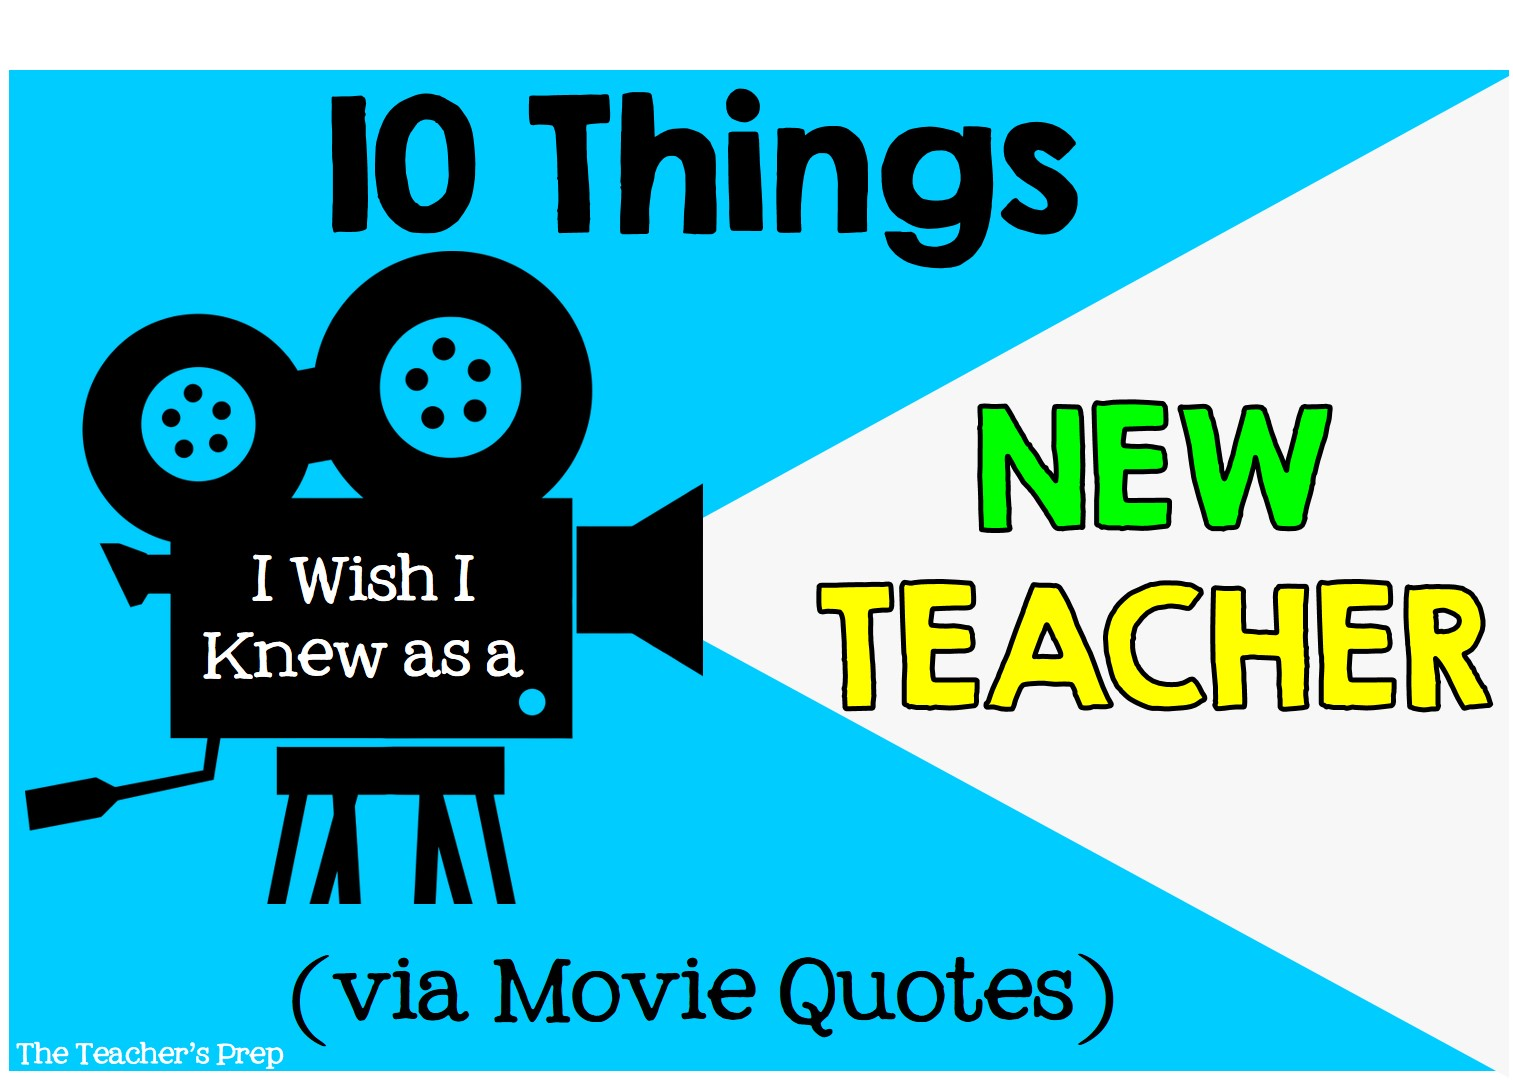 The Teacher's Prep: 10 Things I Wish I Knew As A New